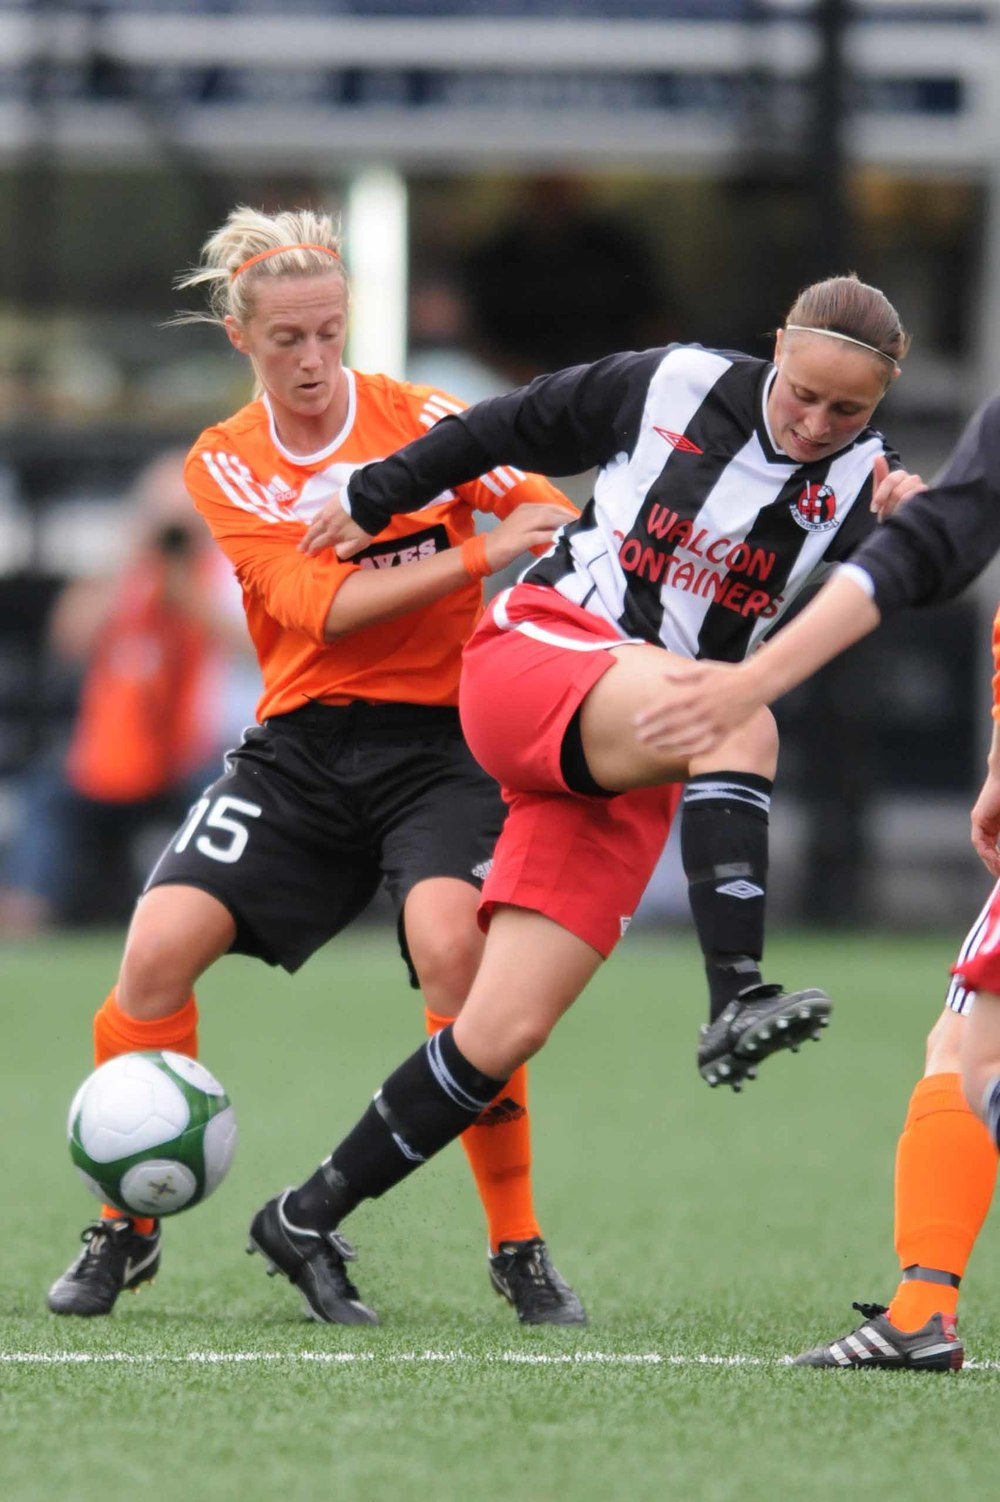 emma fernon glasgow city vs Crusaders 2736.jpg